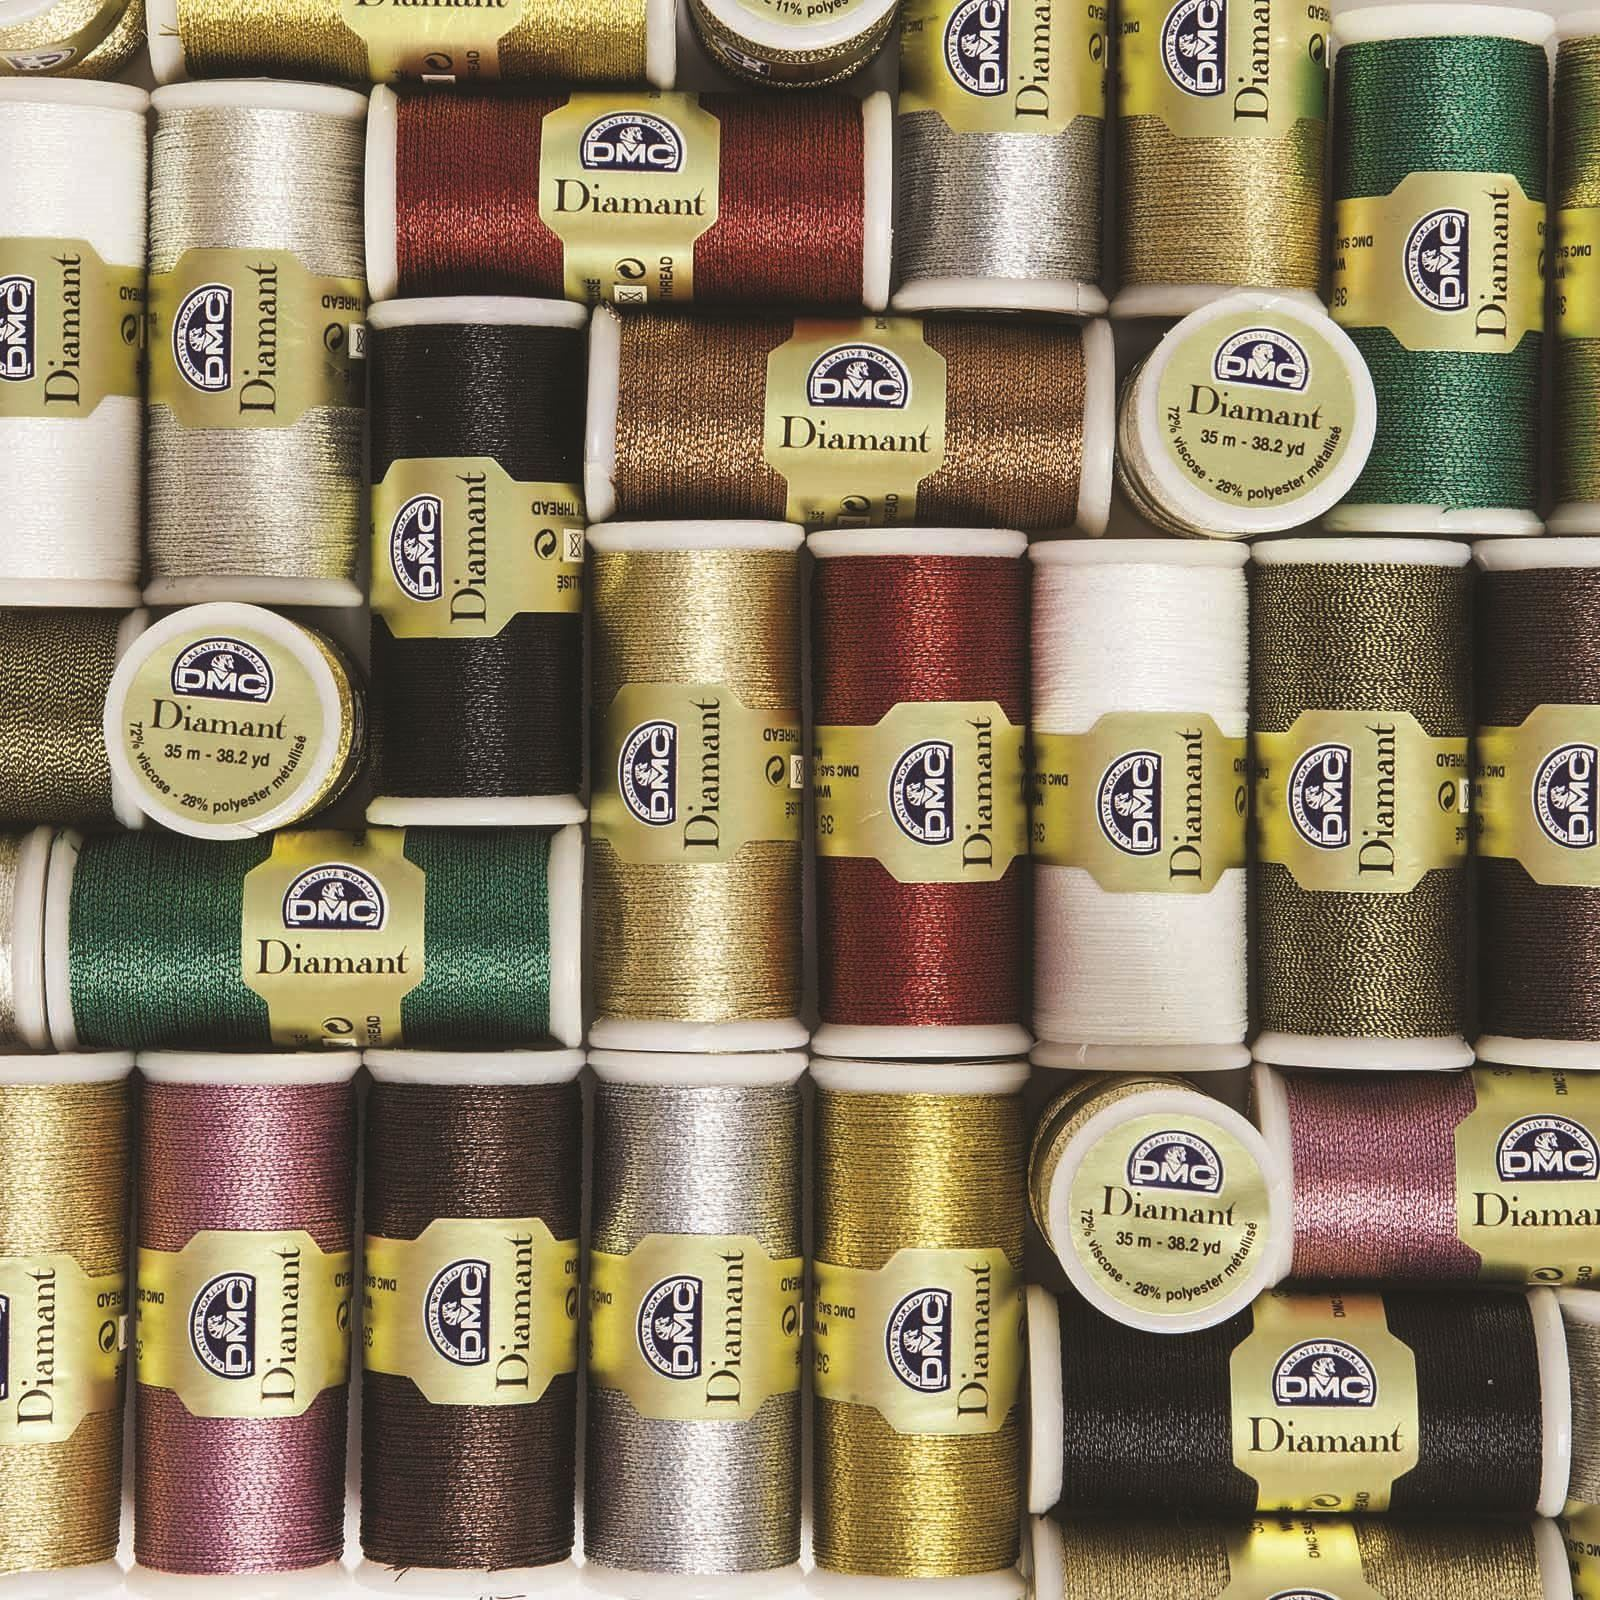 DMC-Diamant-Metallic-Embroidery-Thread-35m-Spool-Cross-Stitch thumbnail 35